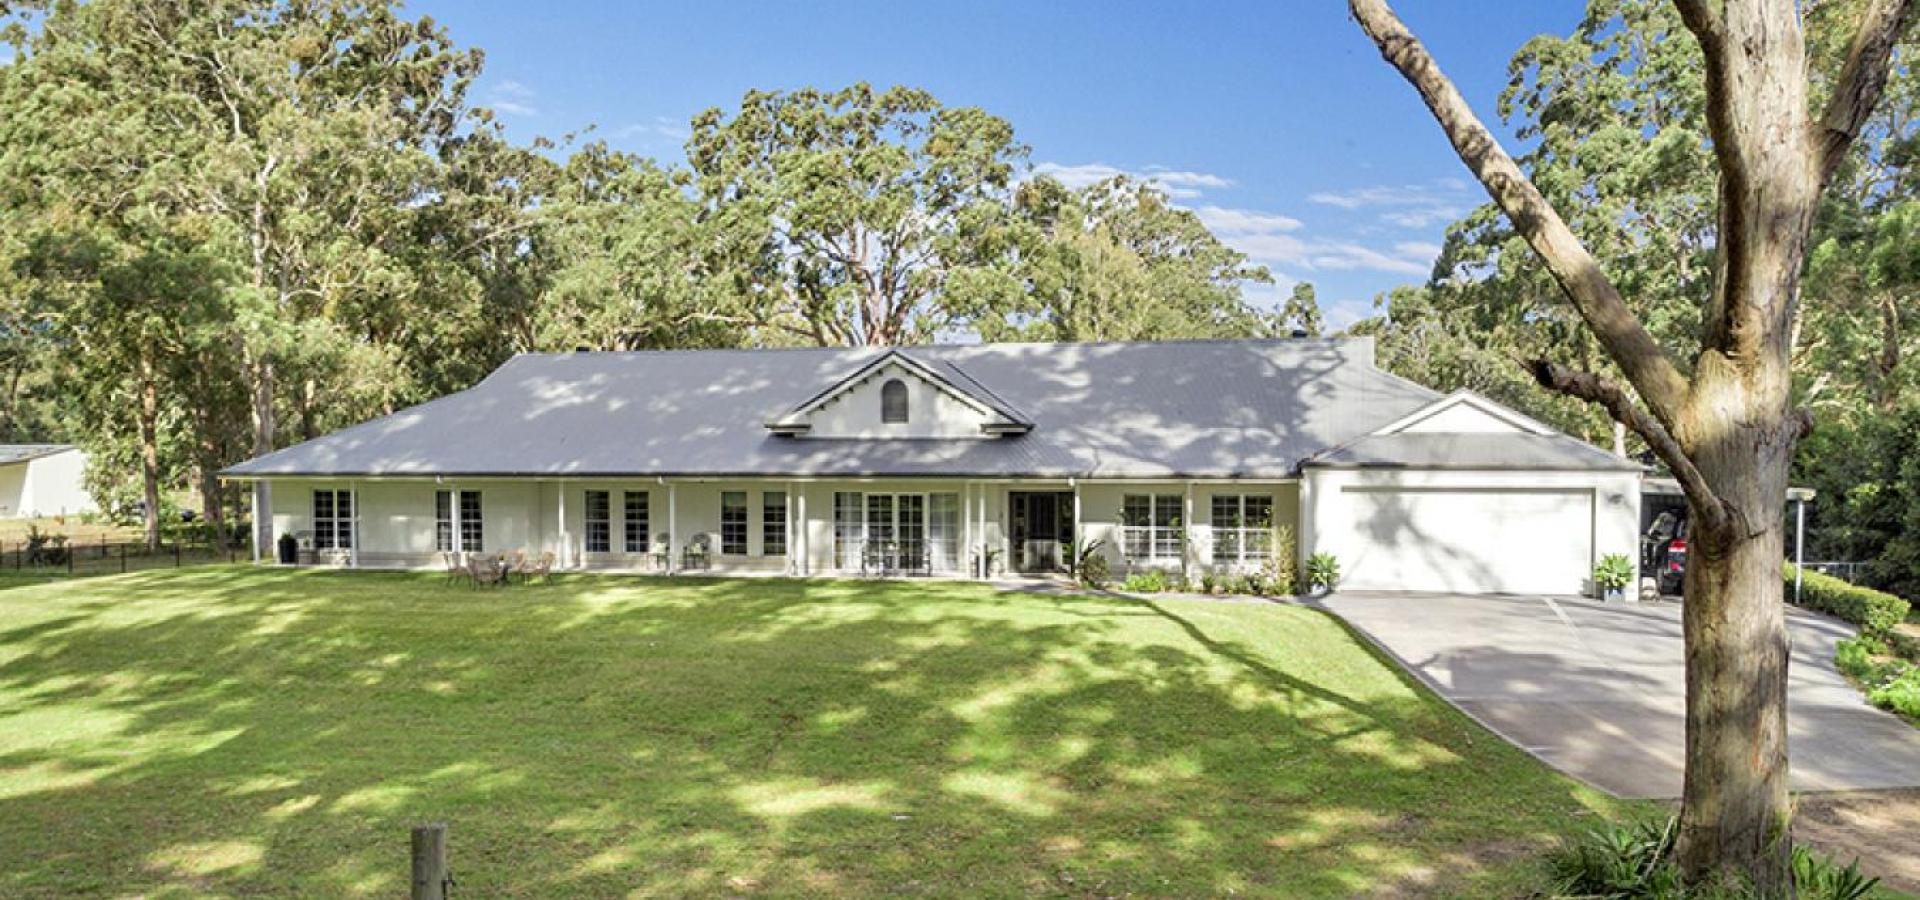 Stunning Palatial family home on an acreage 30 miuntes from Newcastle CBD